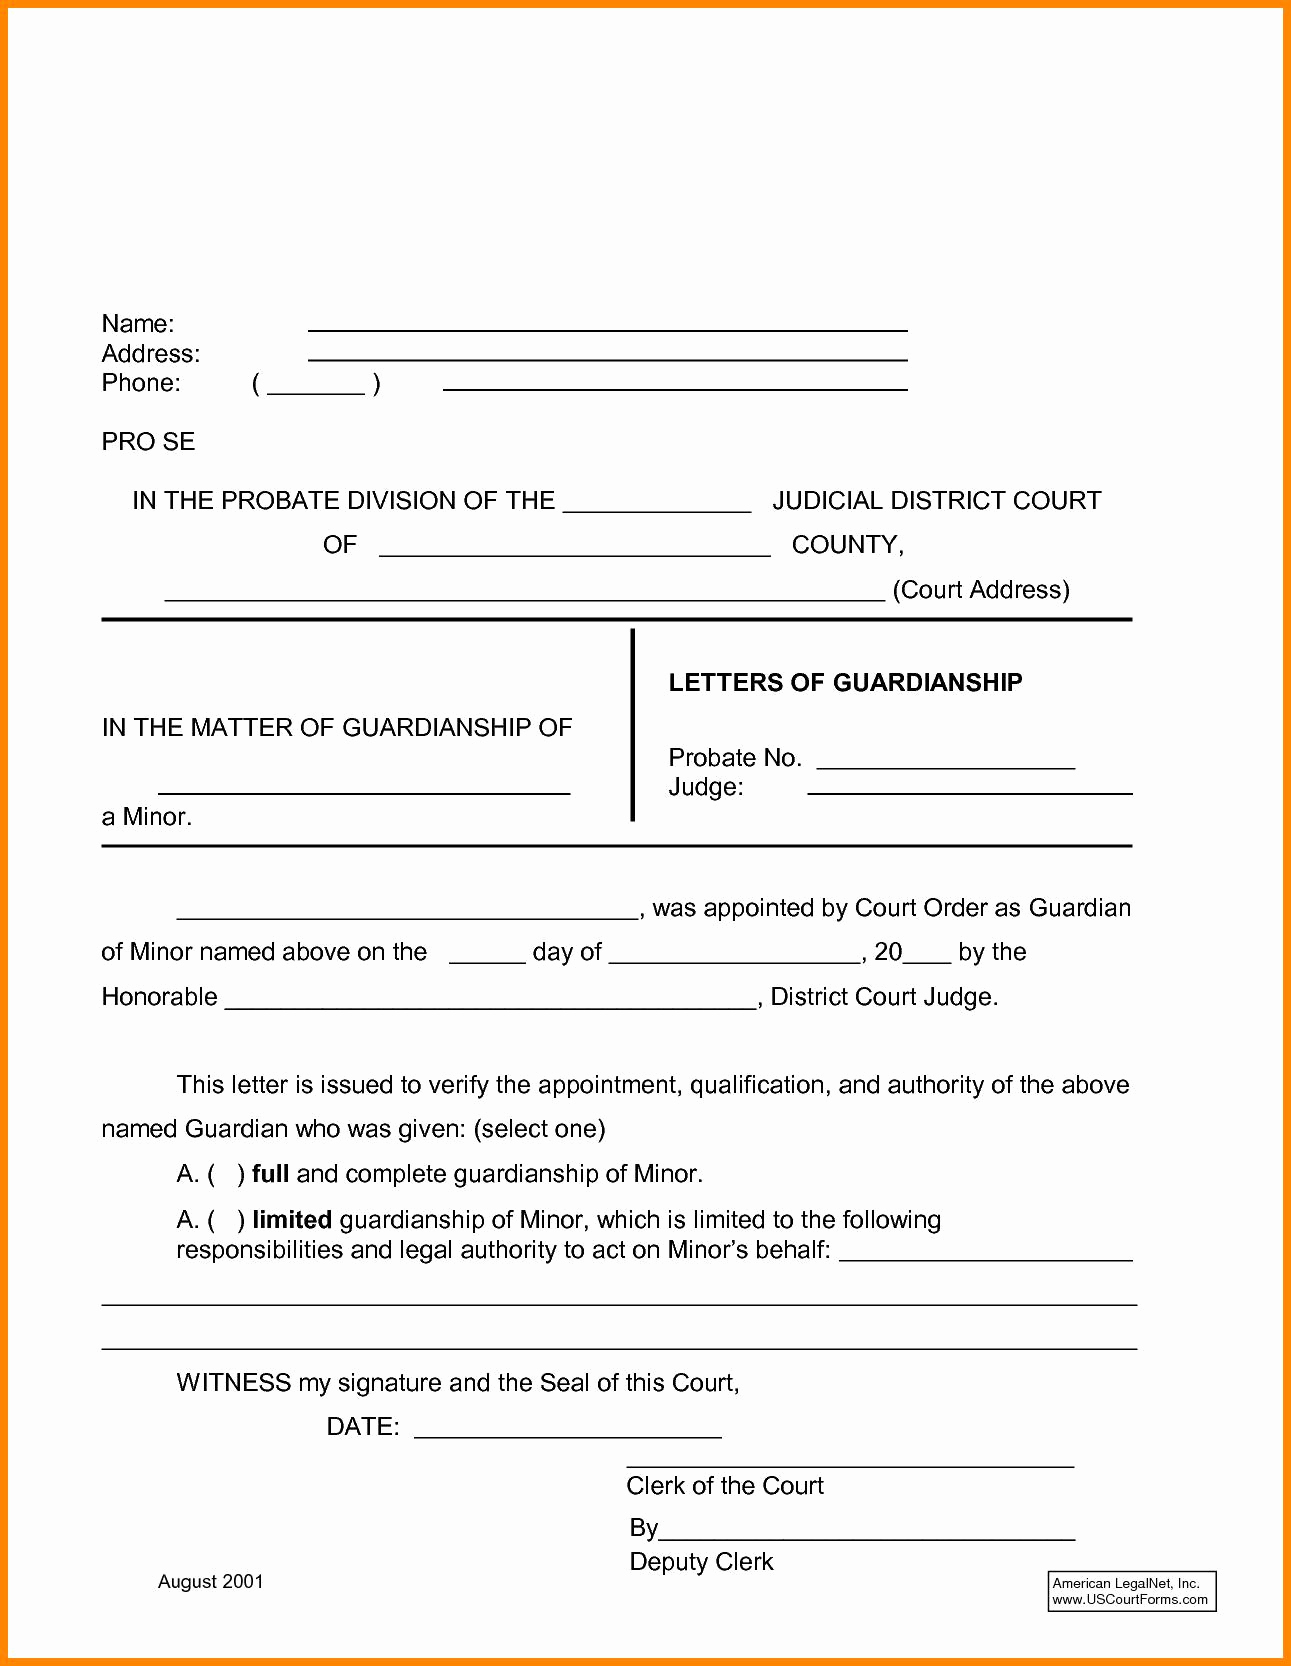 Template for Temporary Guardianship Letter - Temporary Guardianship Agreement form Temporary Custody Letter